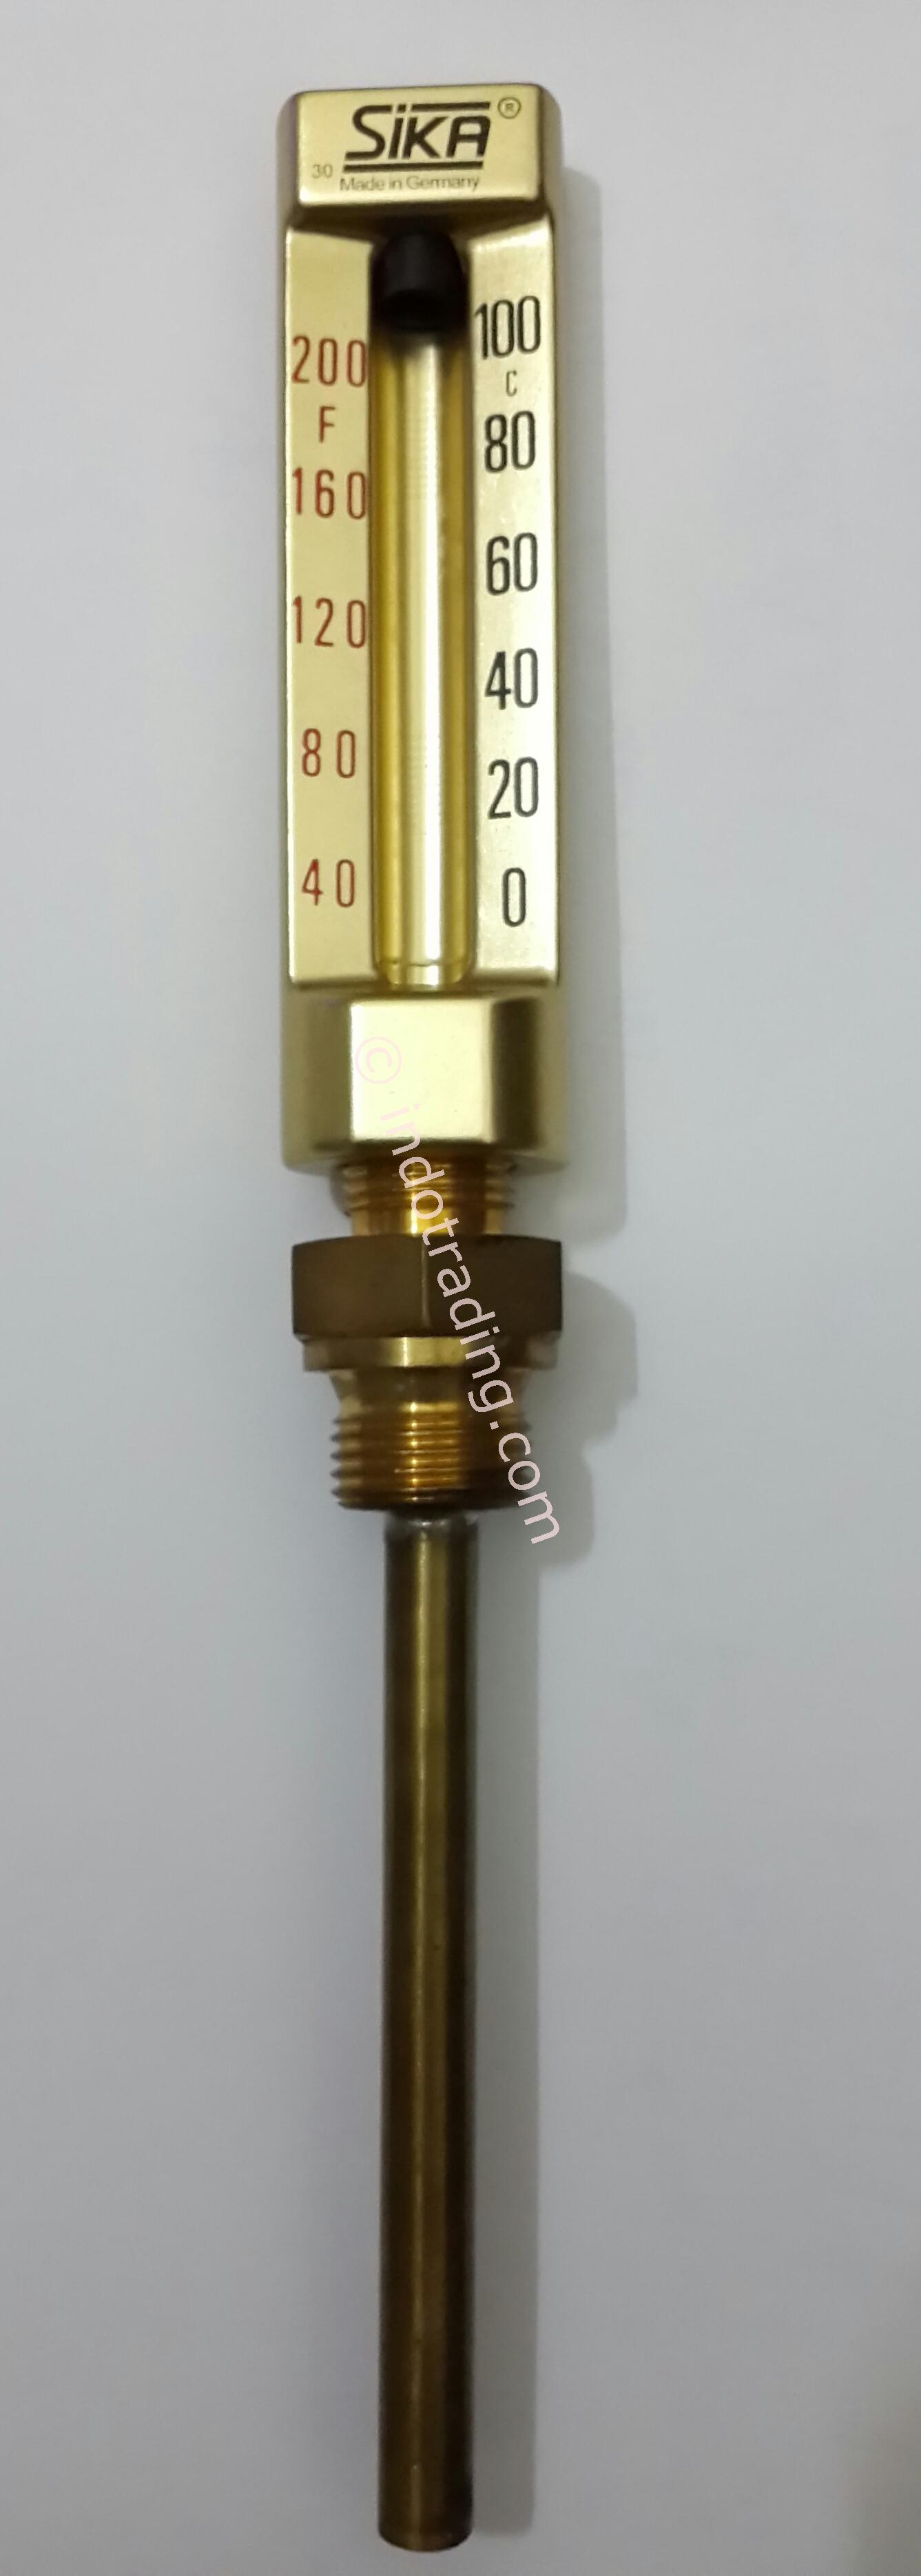 Jual THERMOMETER SIKA